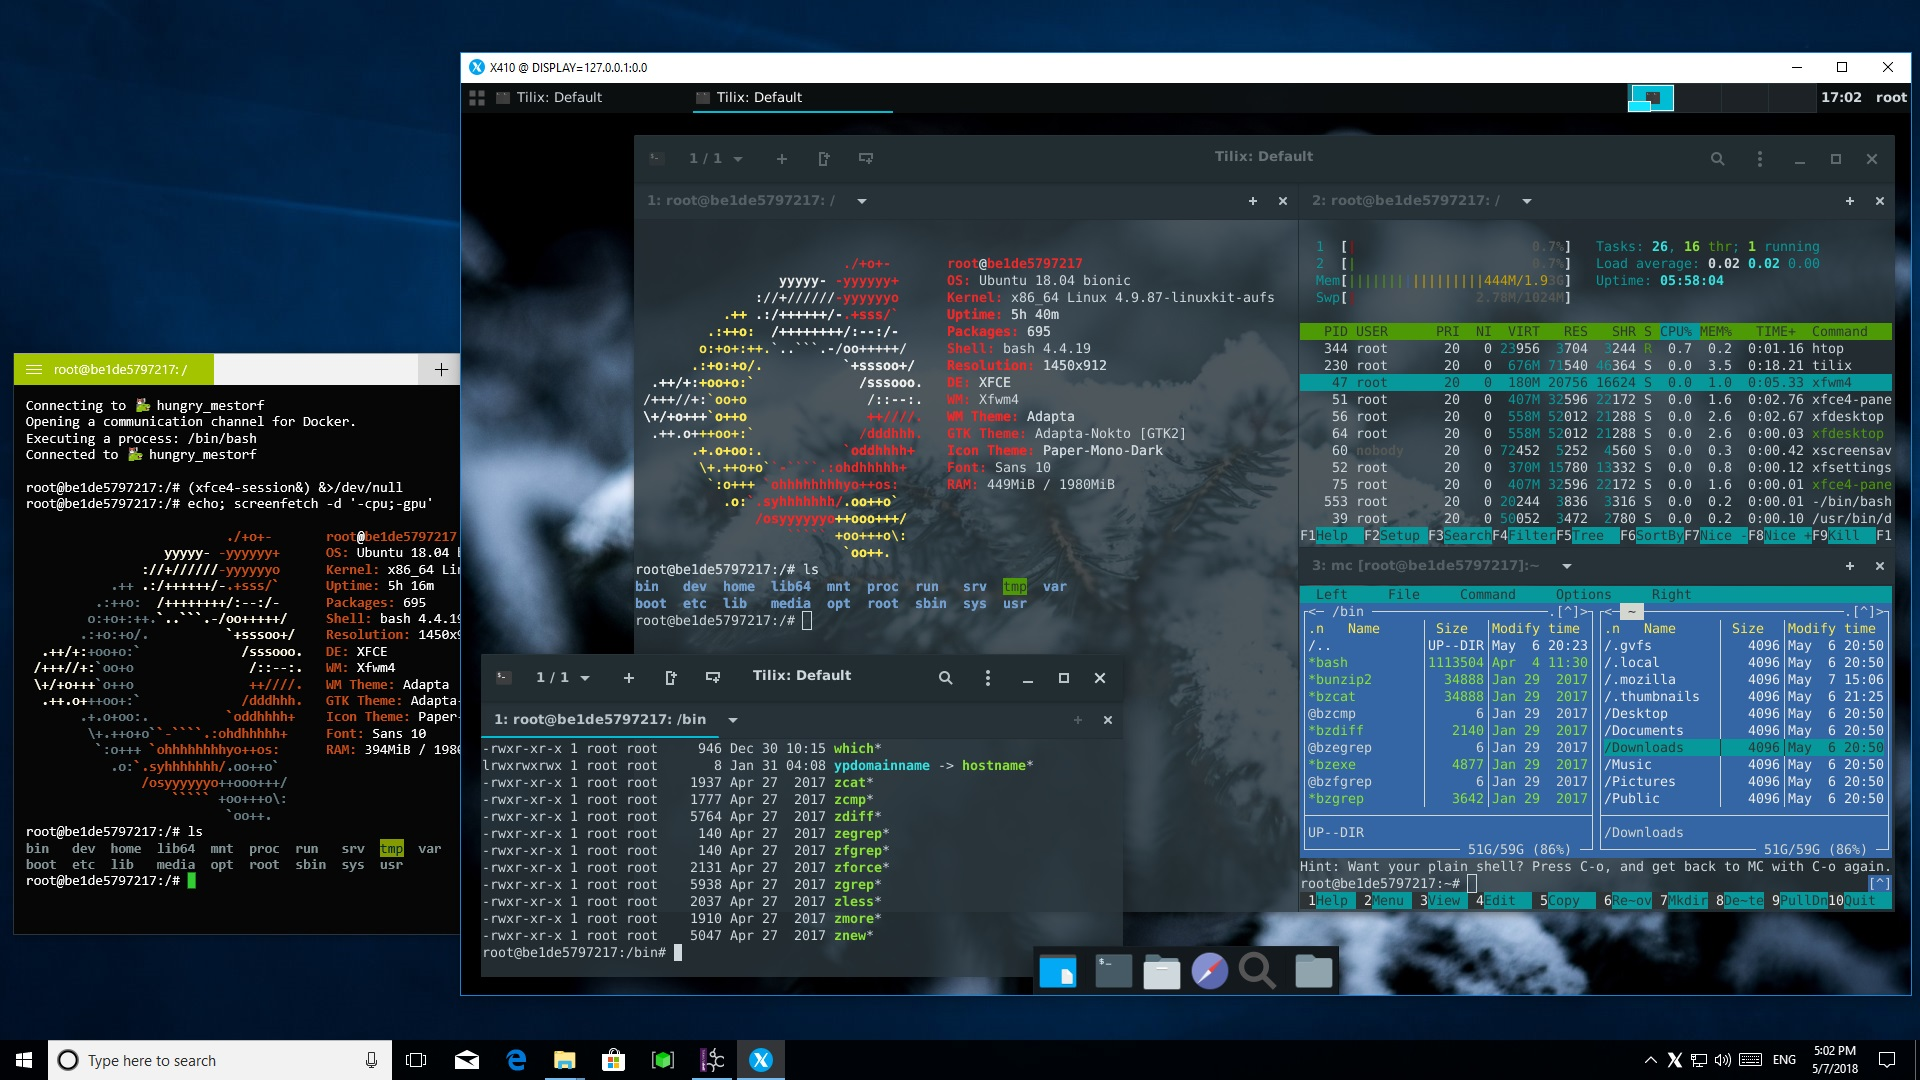 X410 - X Server for Windows 10 - Choung Networks